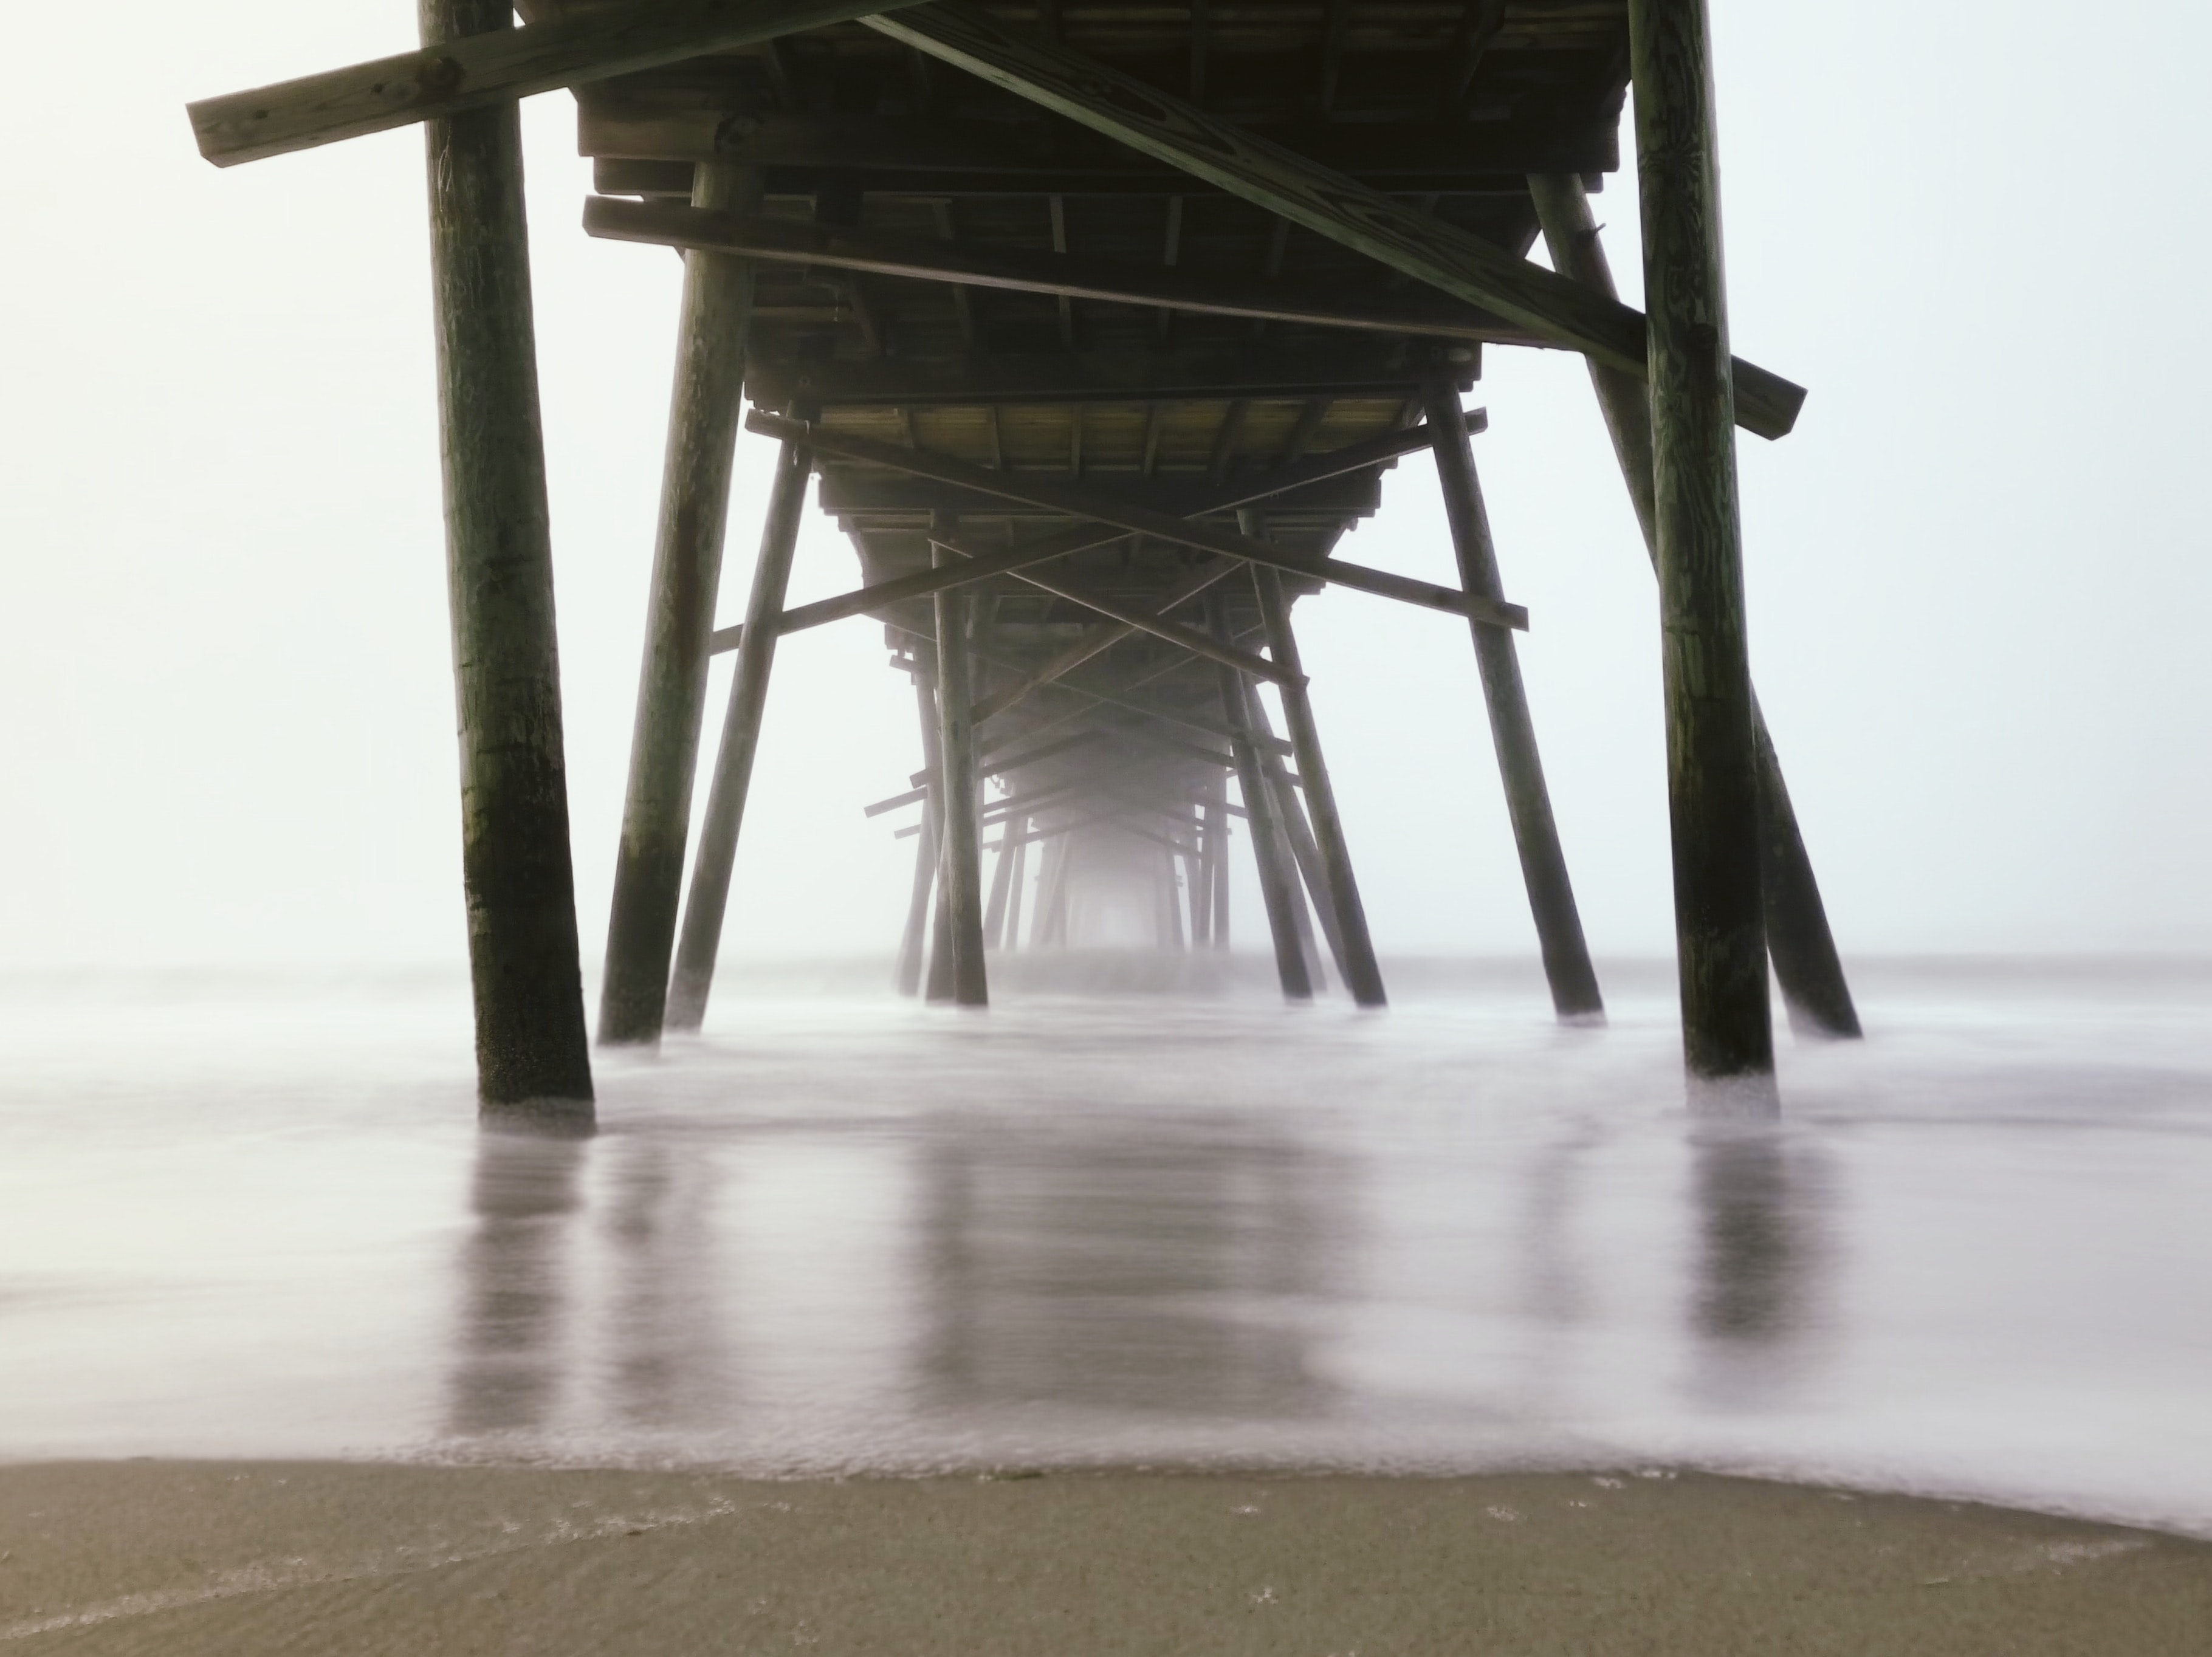 worm's-eye view photography of brown wooden dock